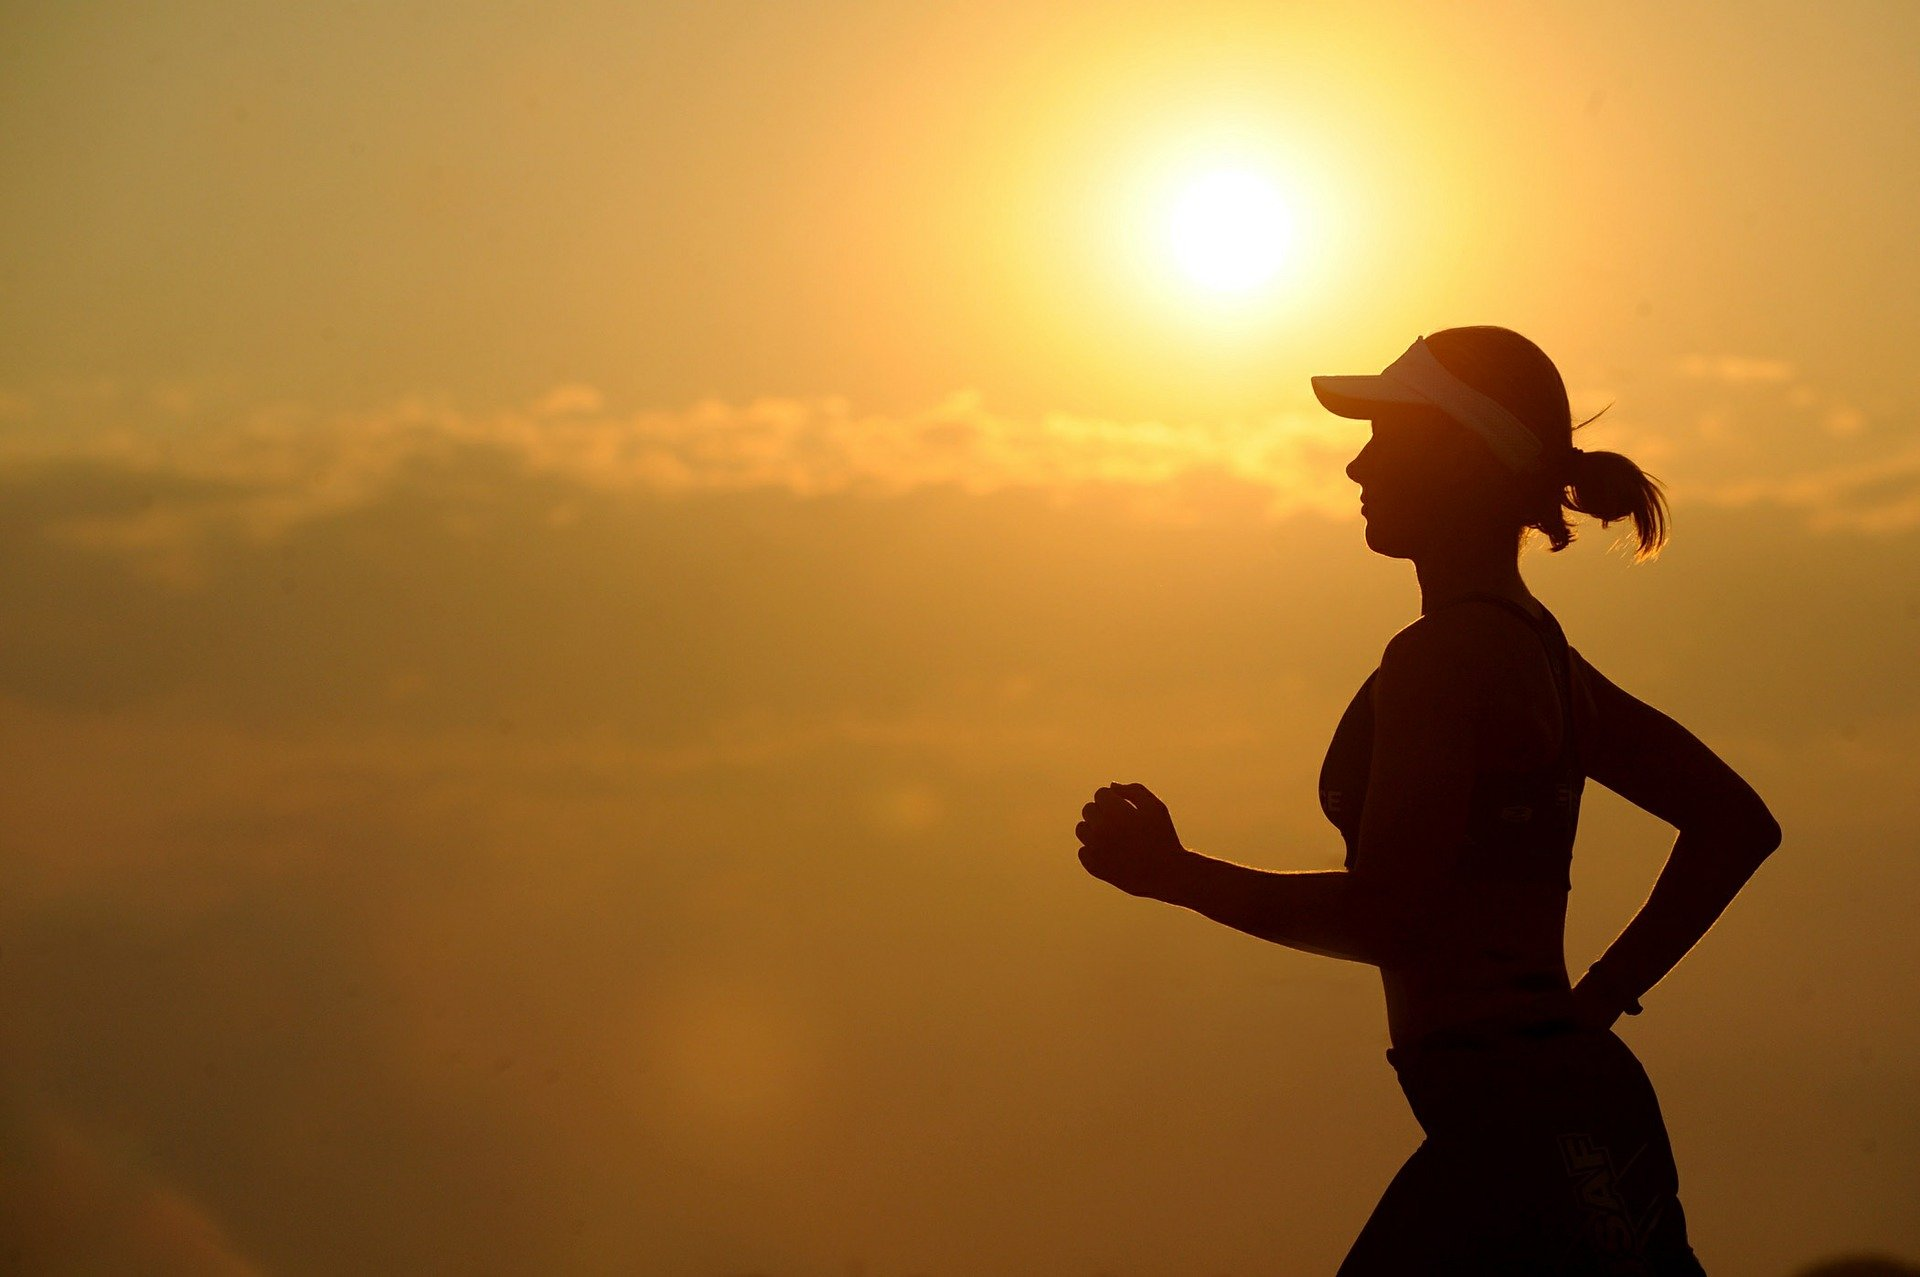 Public unaware of cancer risk from too little exercise, study reports